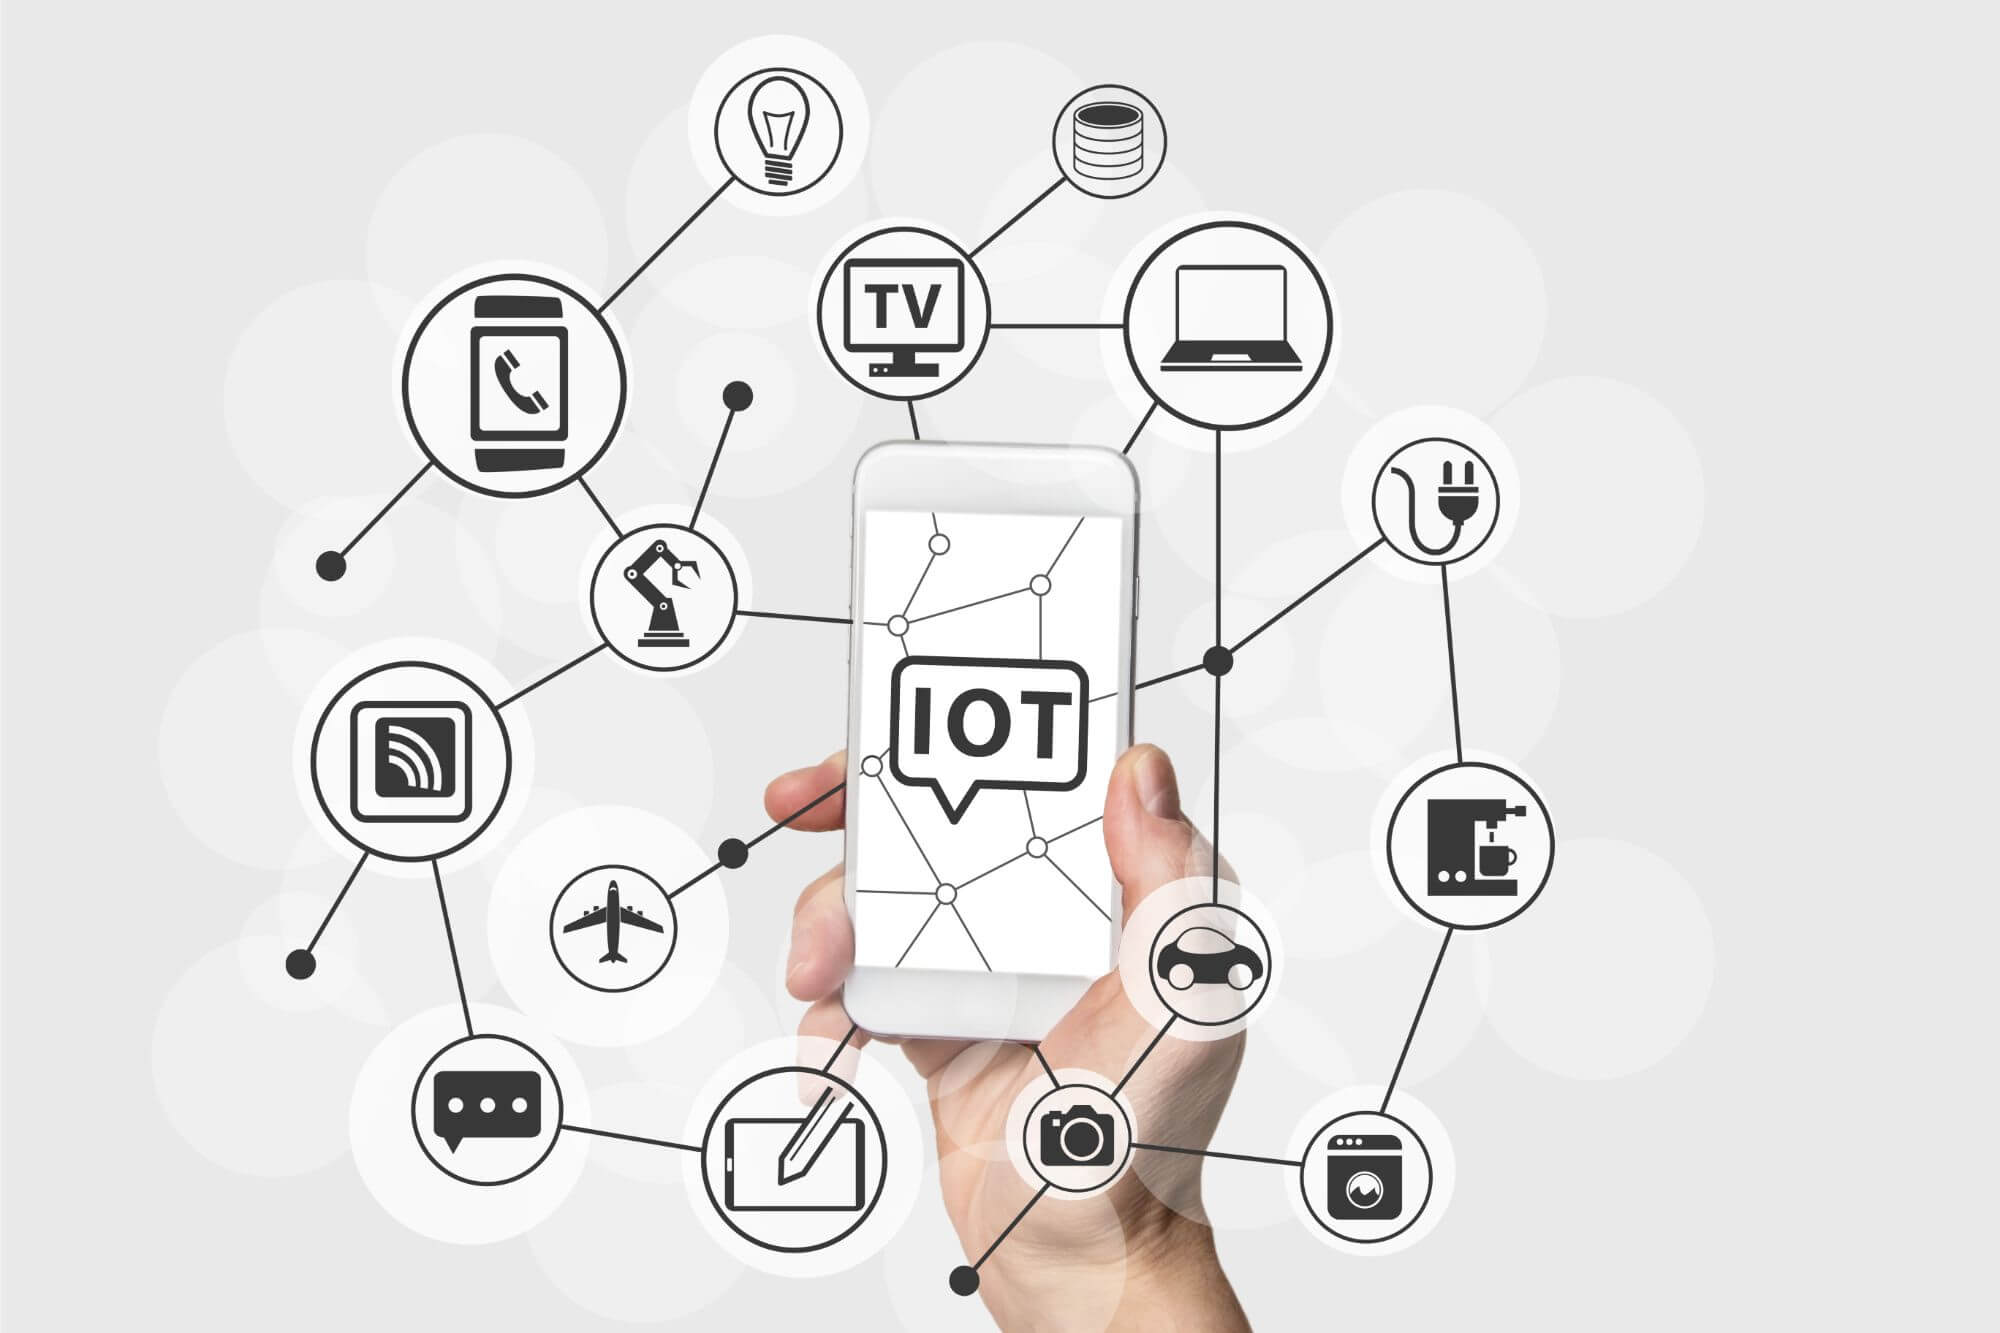 IOT 1 - The internet of things on our daily lives